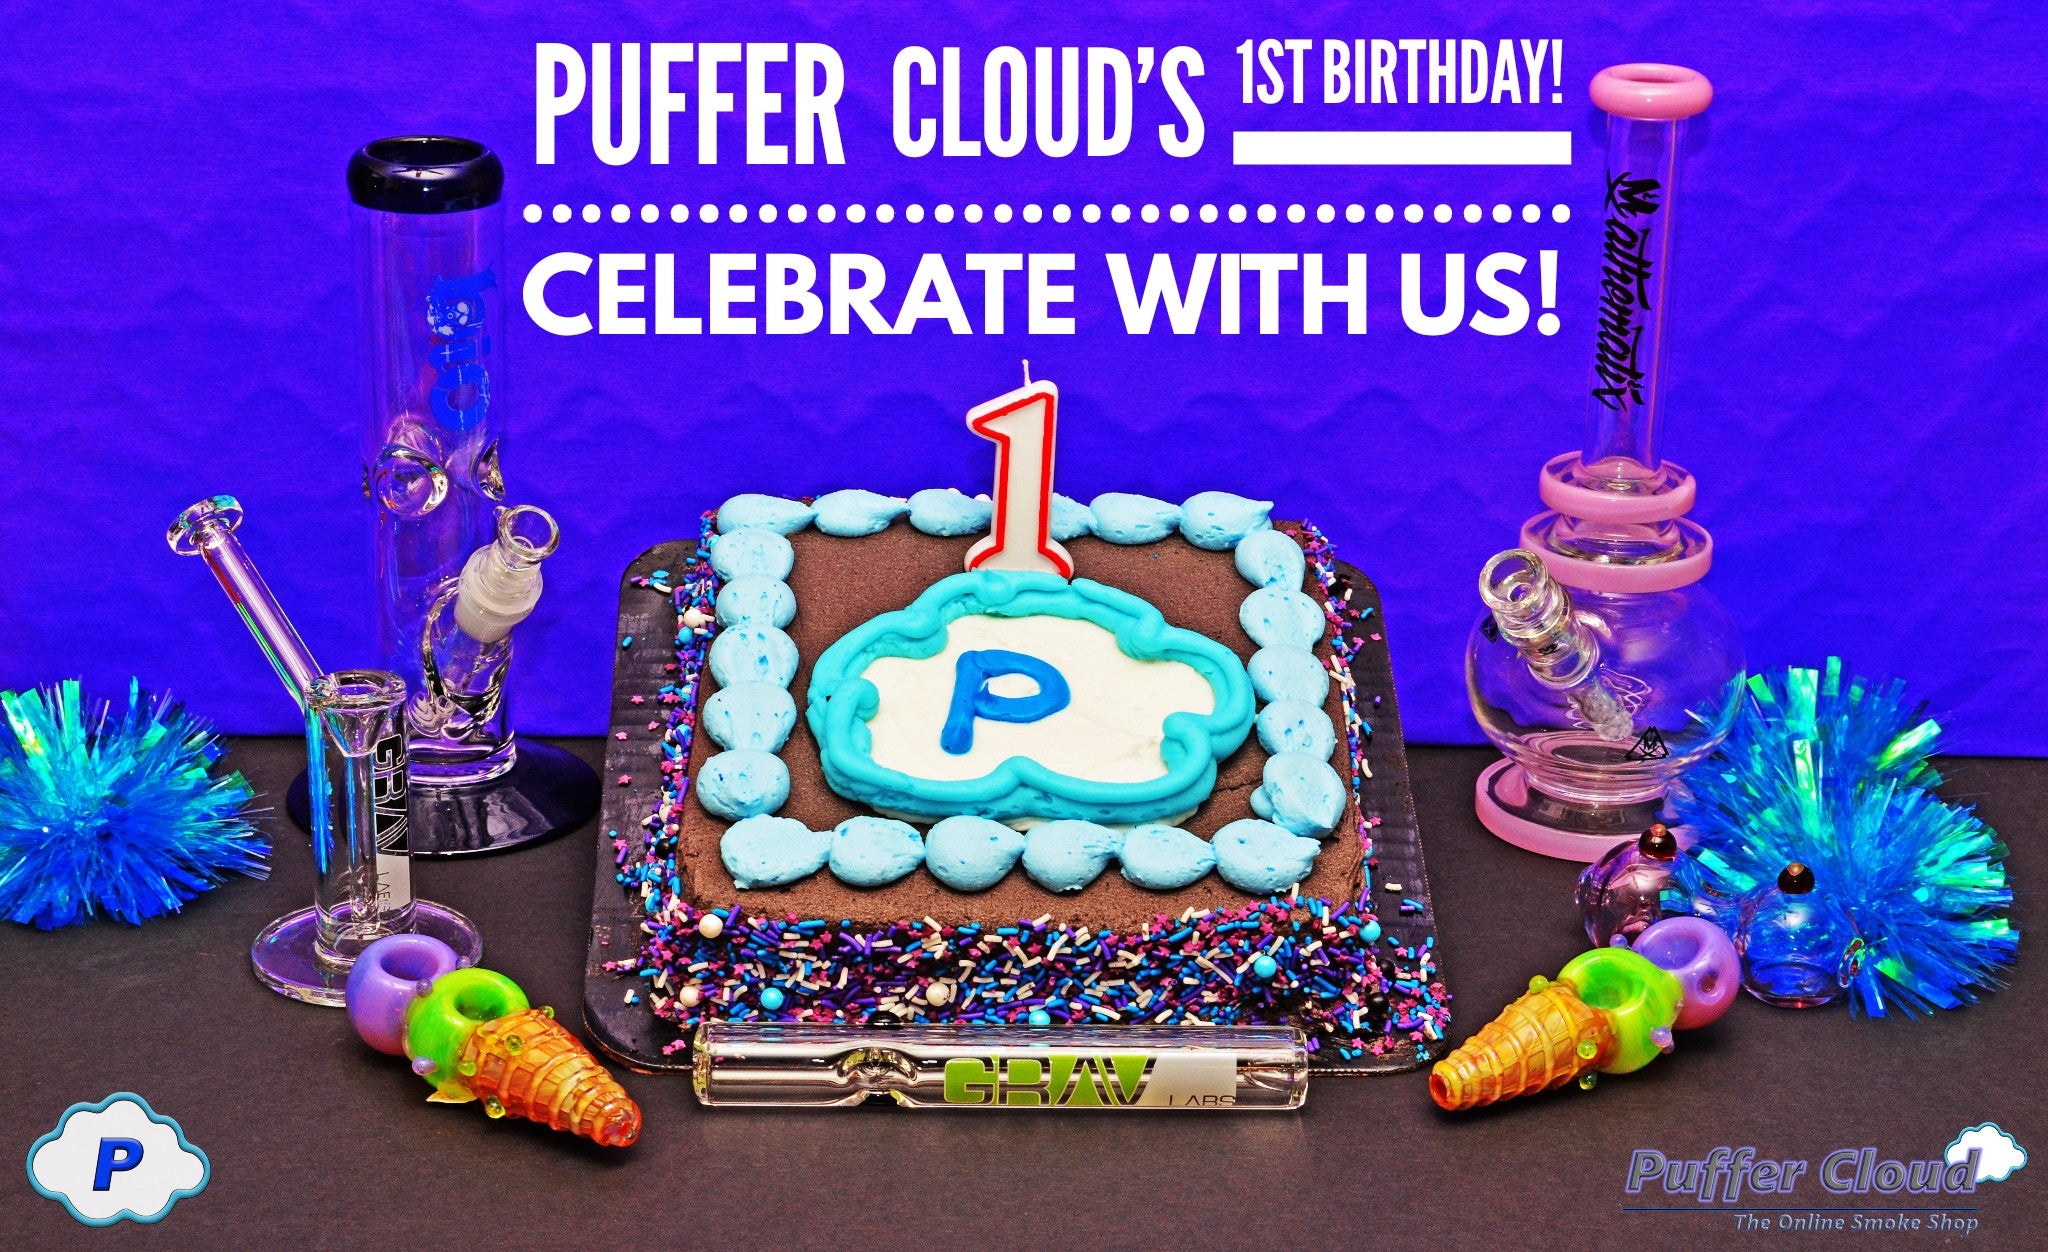 Puffer Cloud's 1st Birthday! Celebrate with us! 20% off!